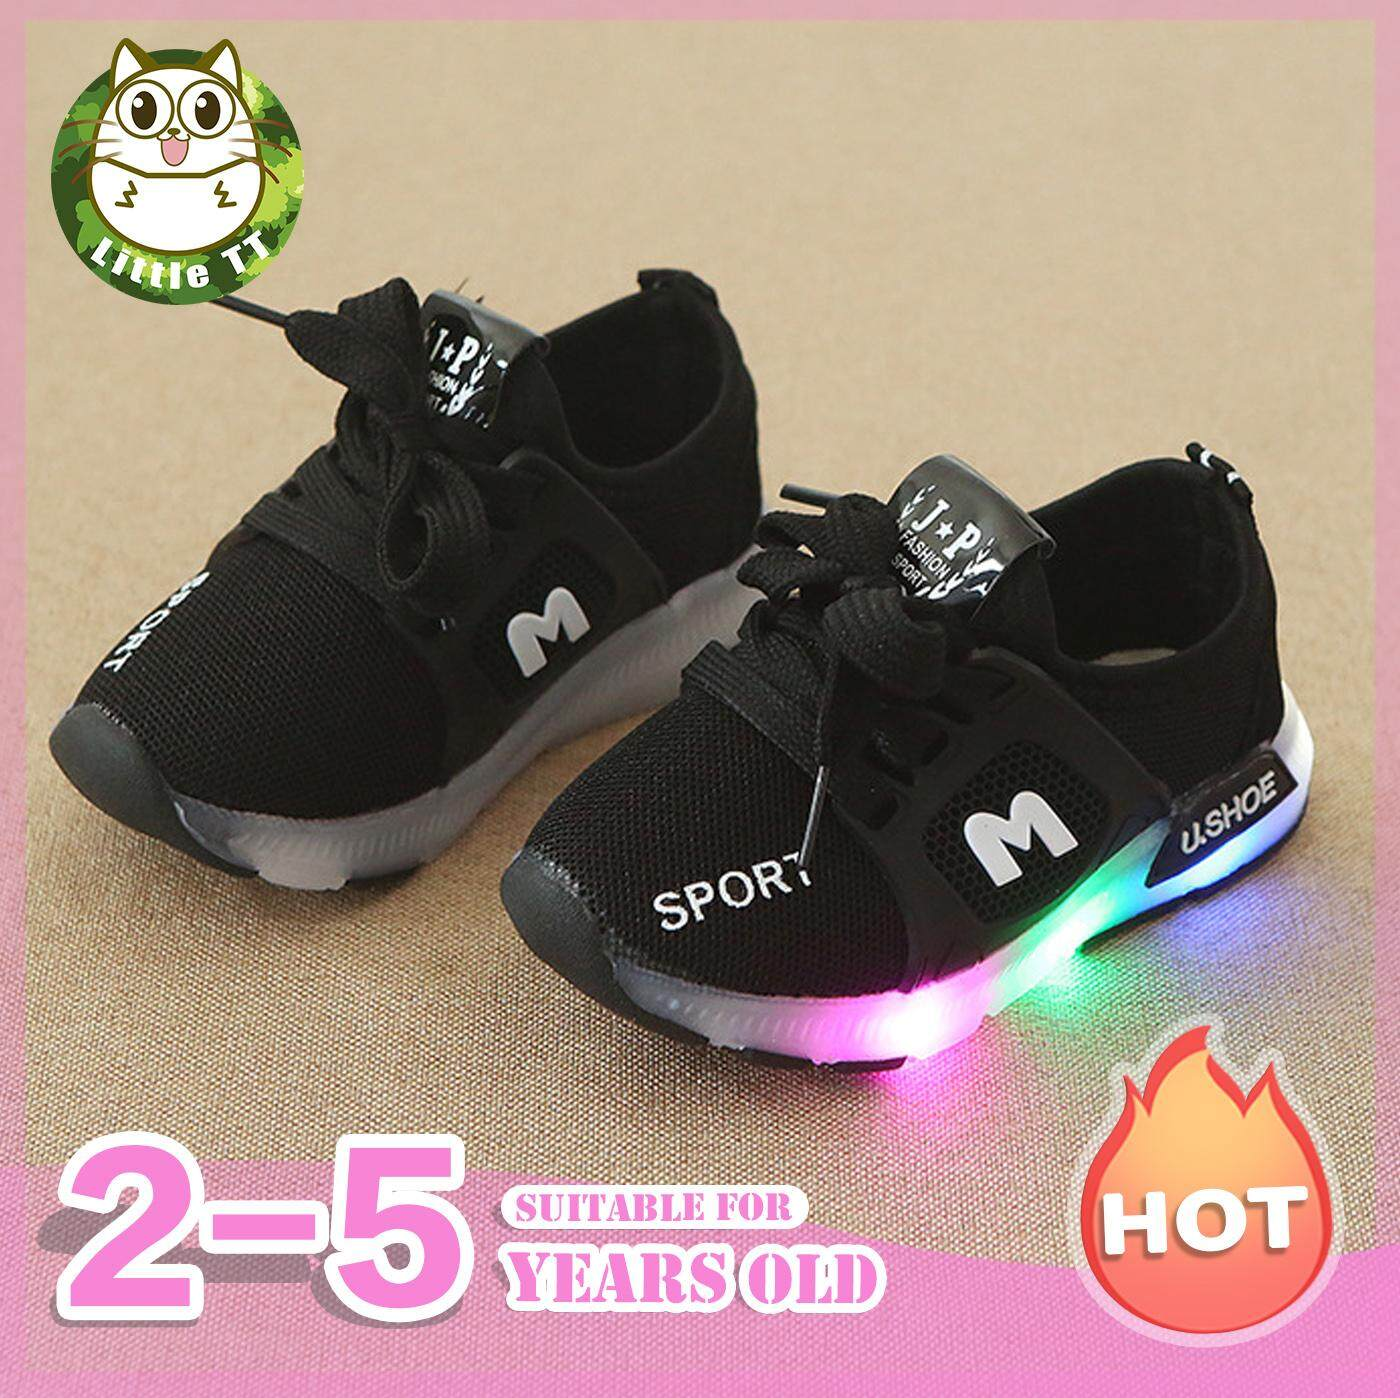 5f7ad6dd896 Boys Shoes - Buy Boys Shoes at Best Price in Singapore | www.lazada.sg